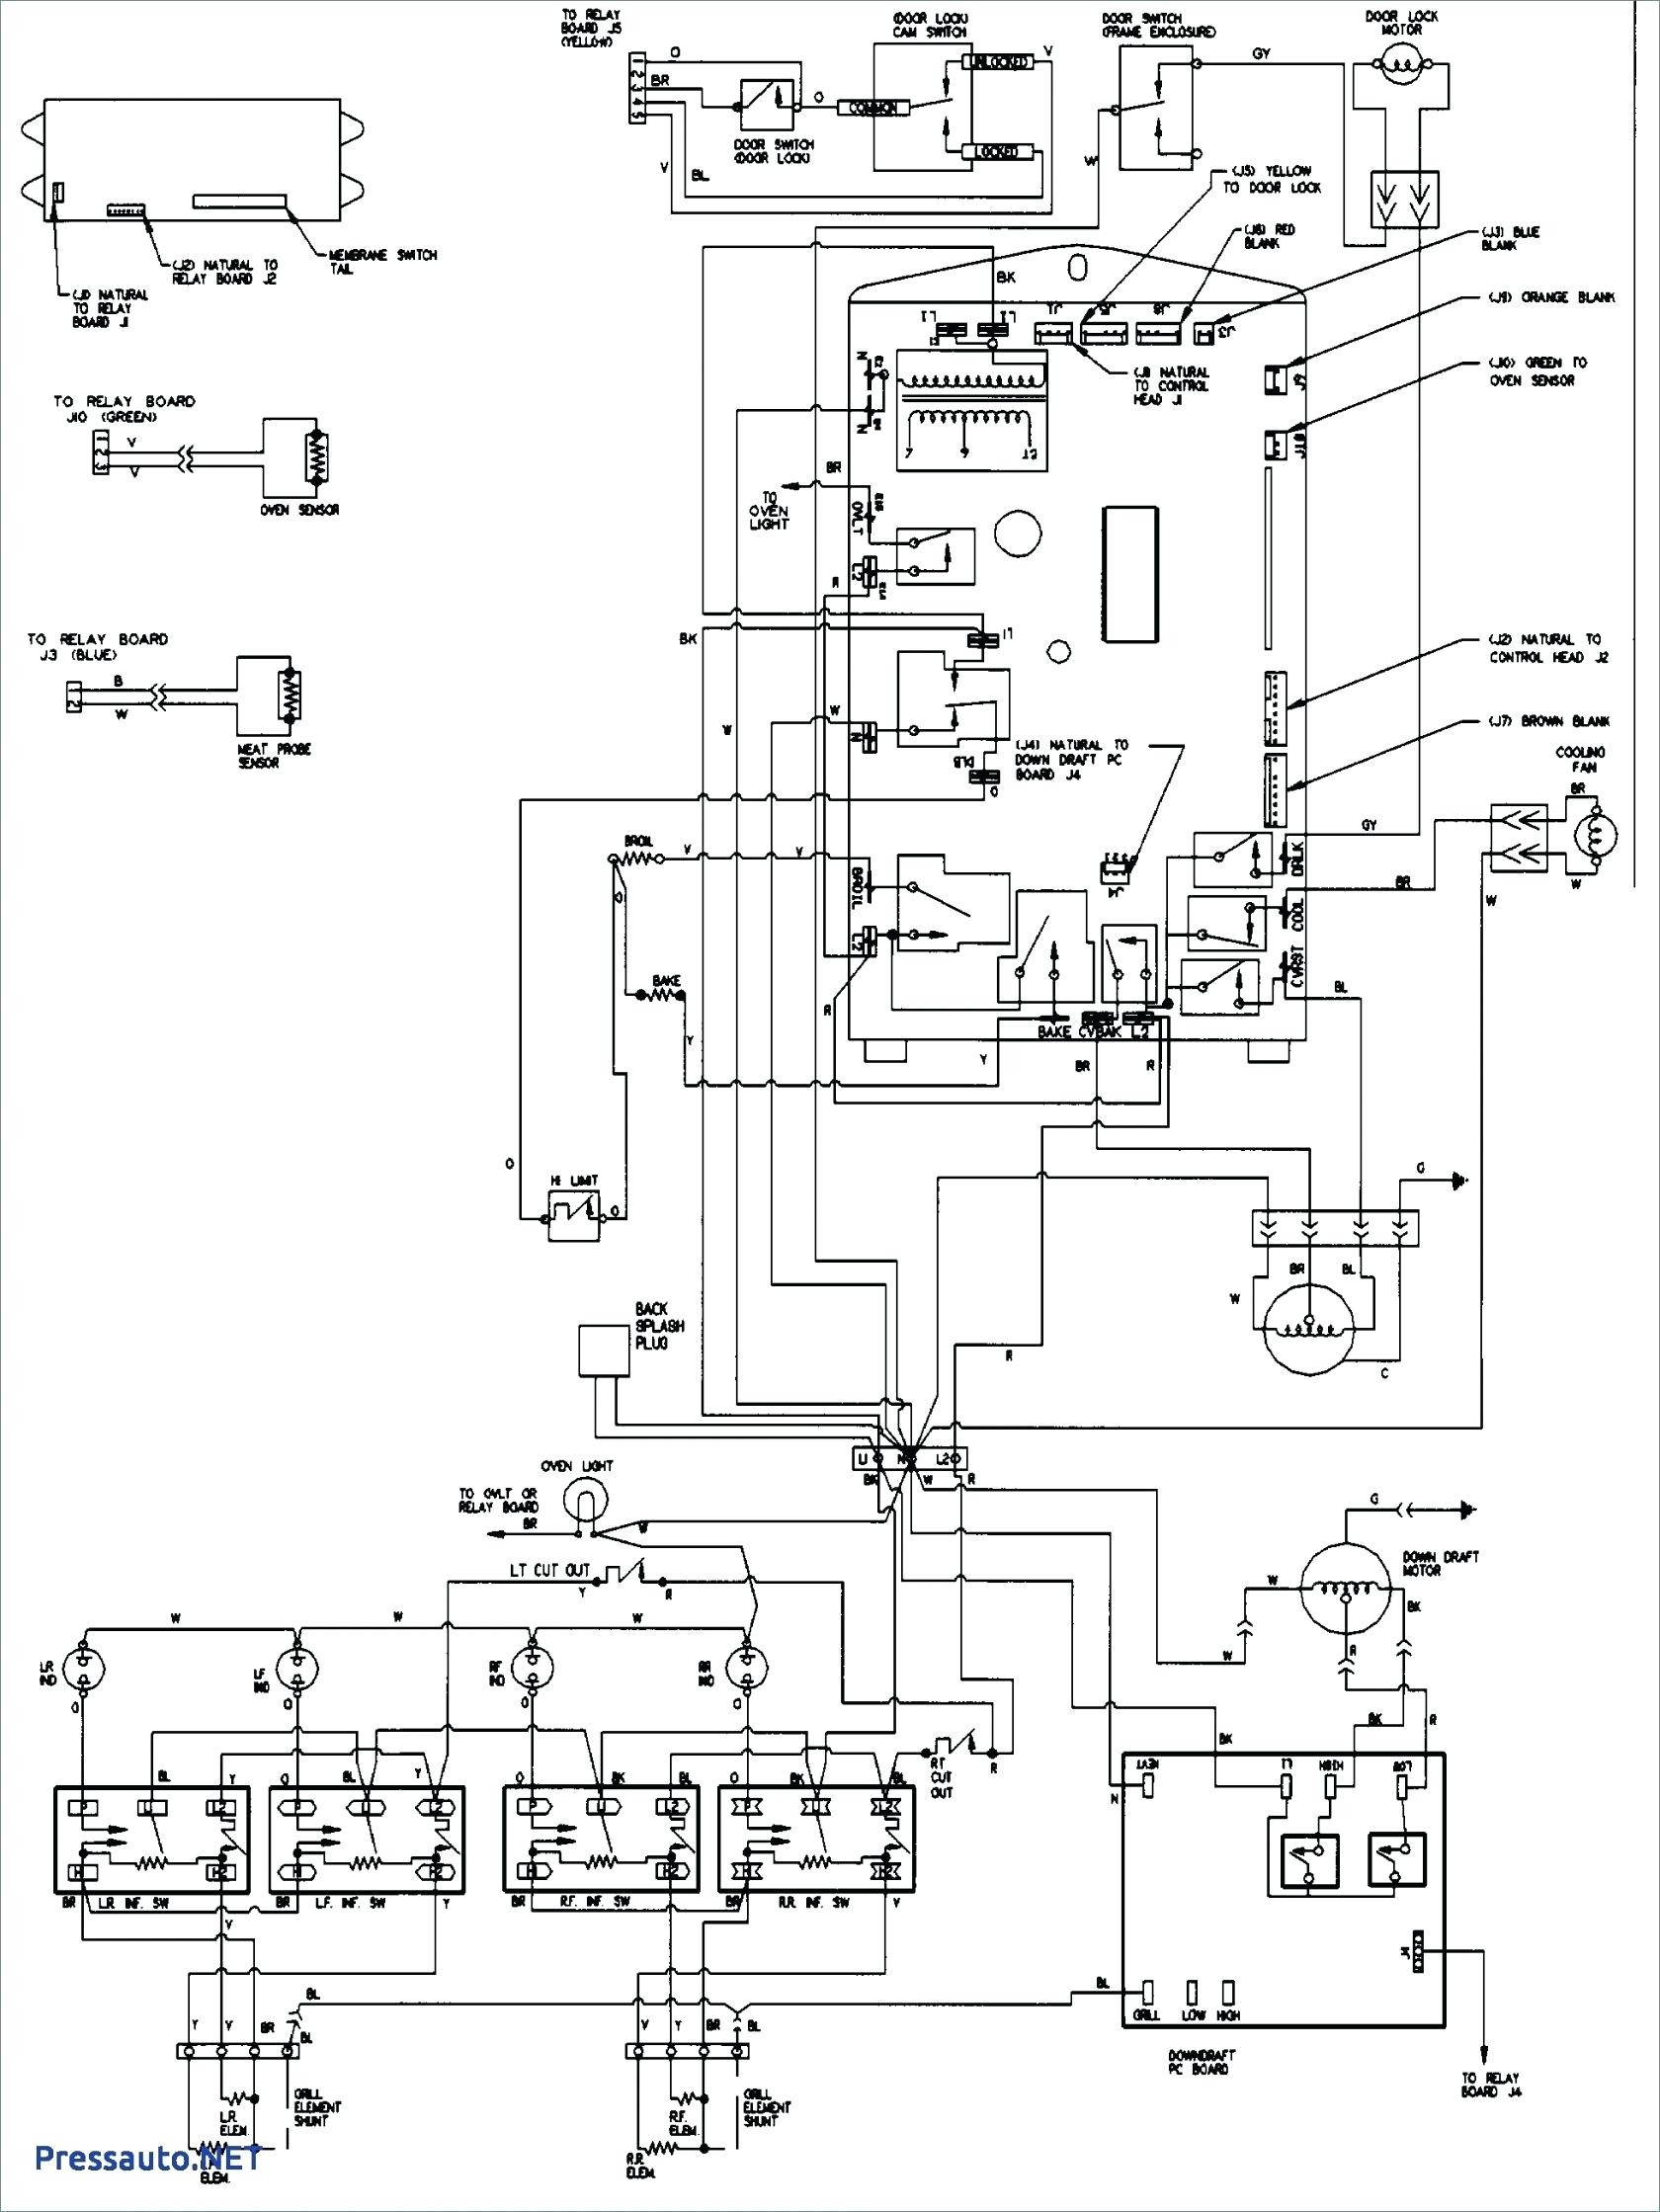 Lennox Elite Series Furnace Wiring Diagram